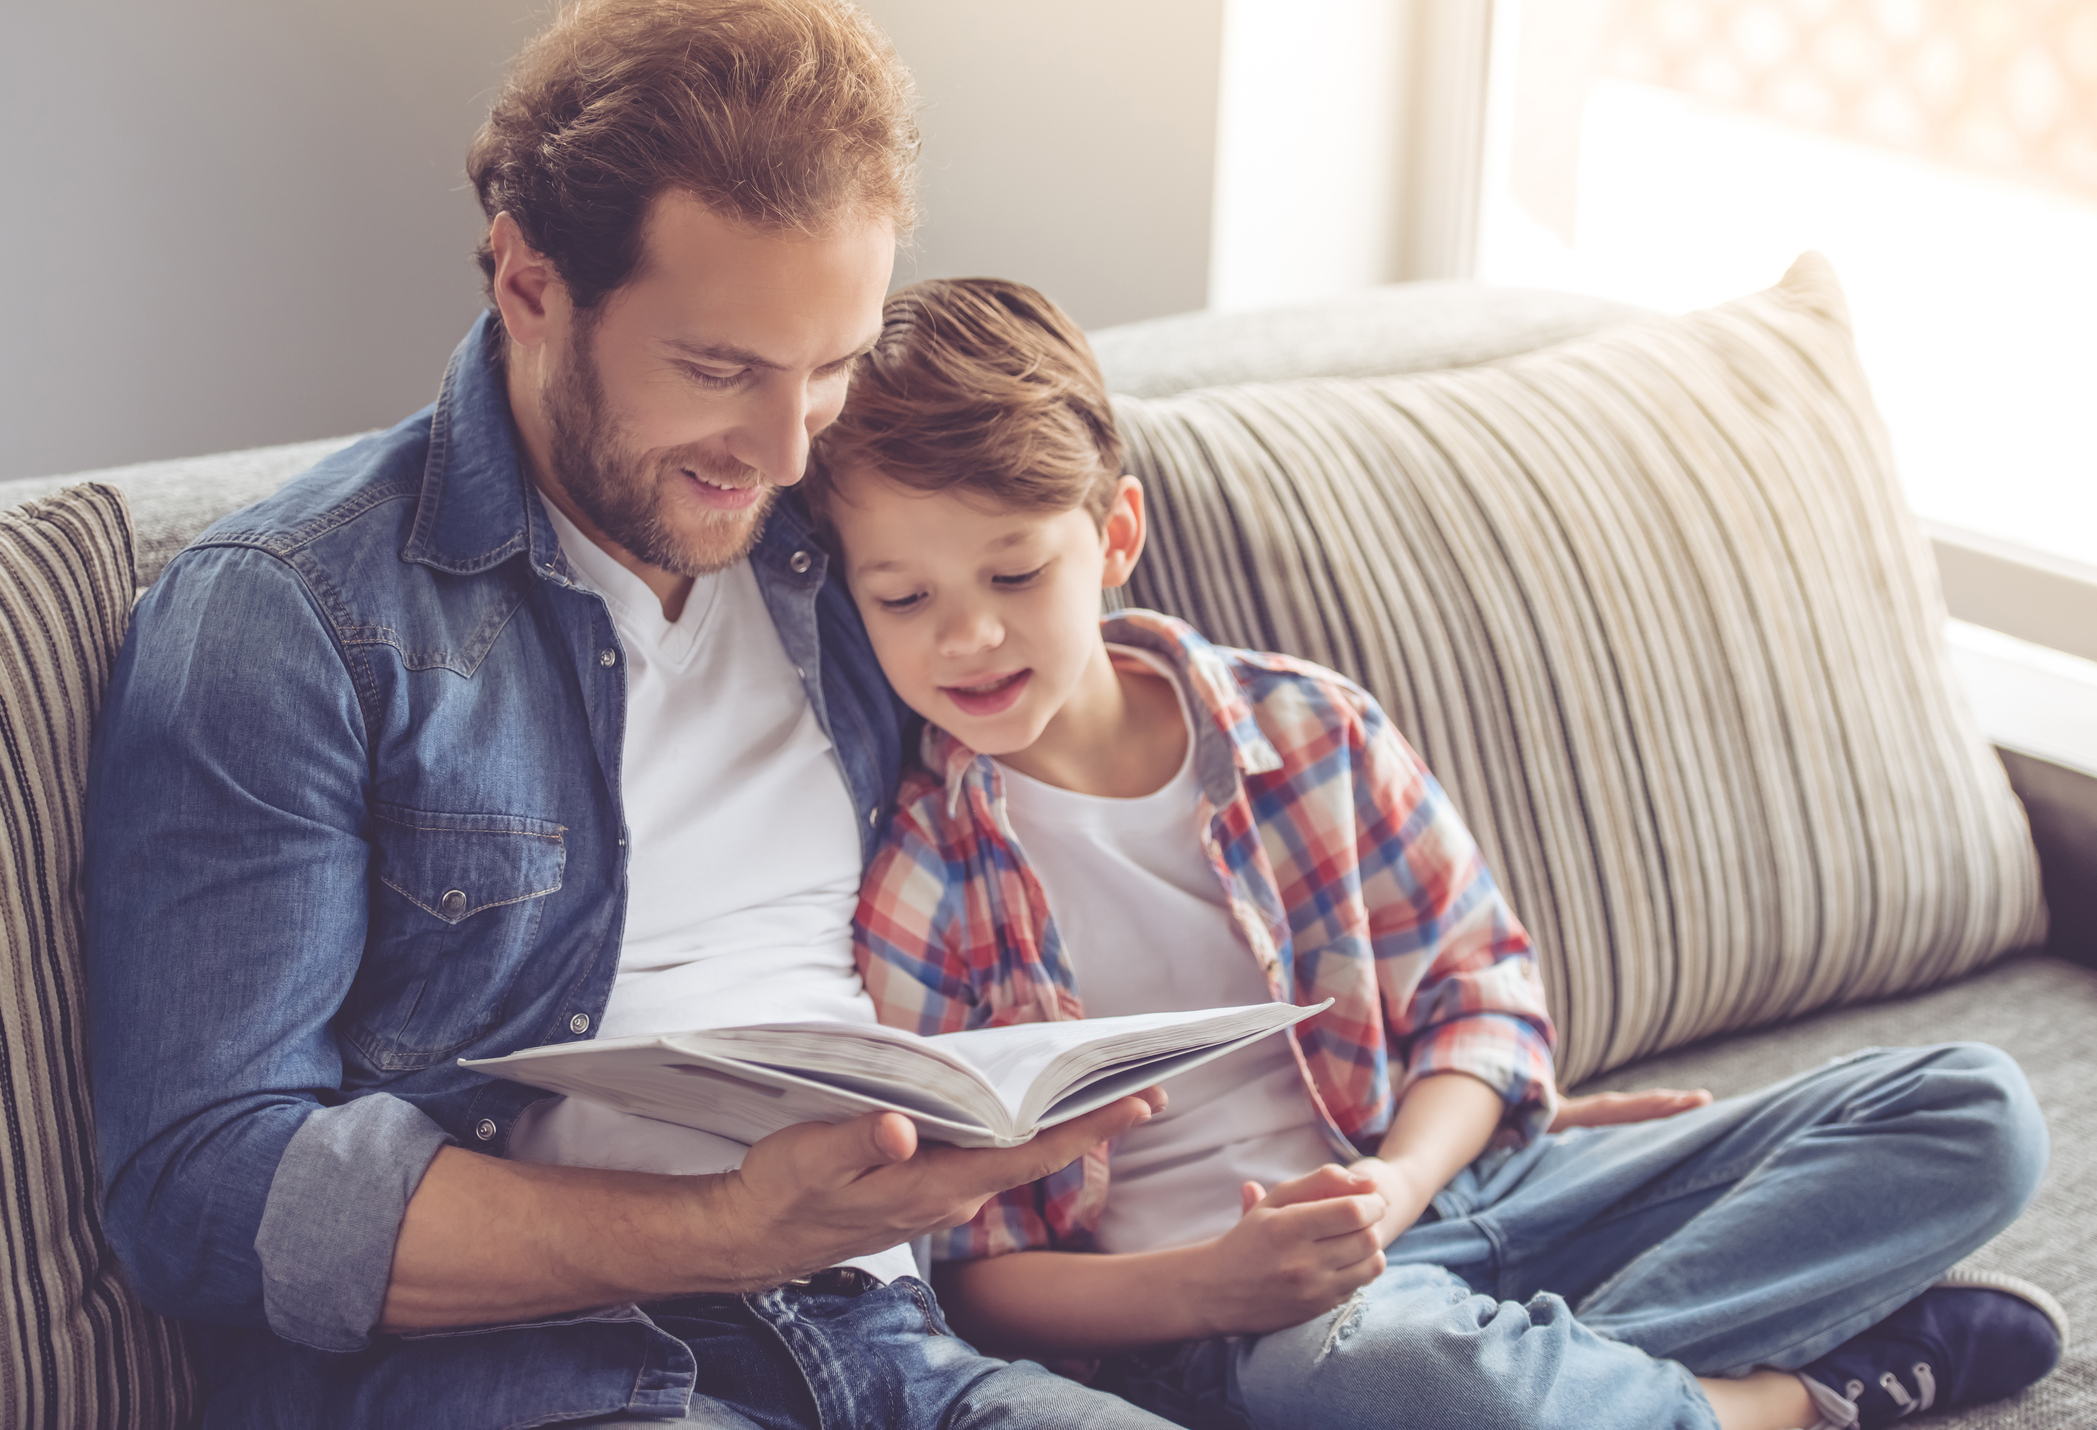 Father and son are reading a book and smiling while spending time together at home (Thinkstock/PA)